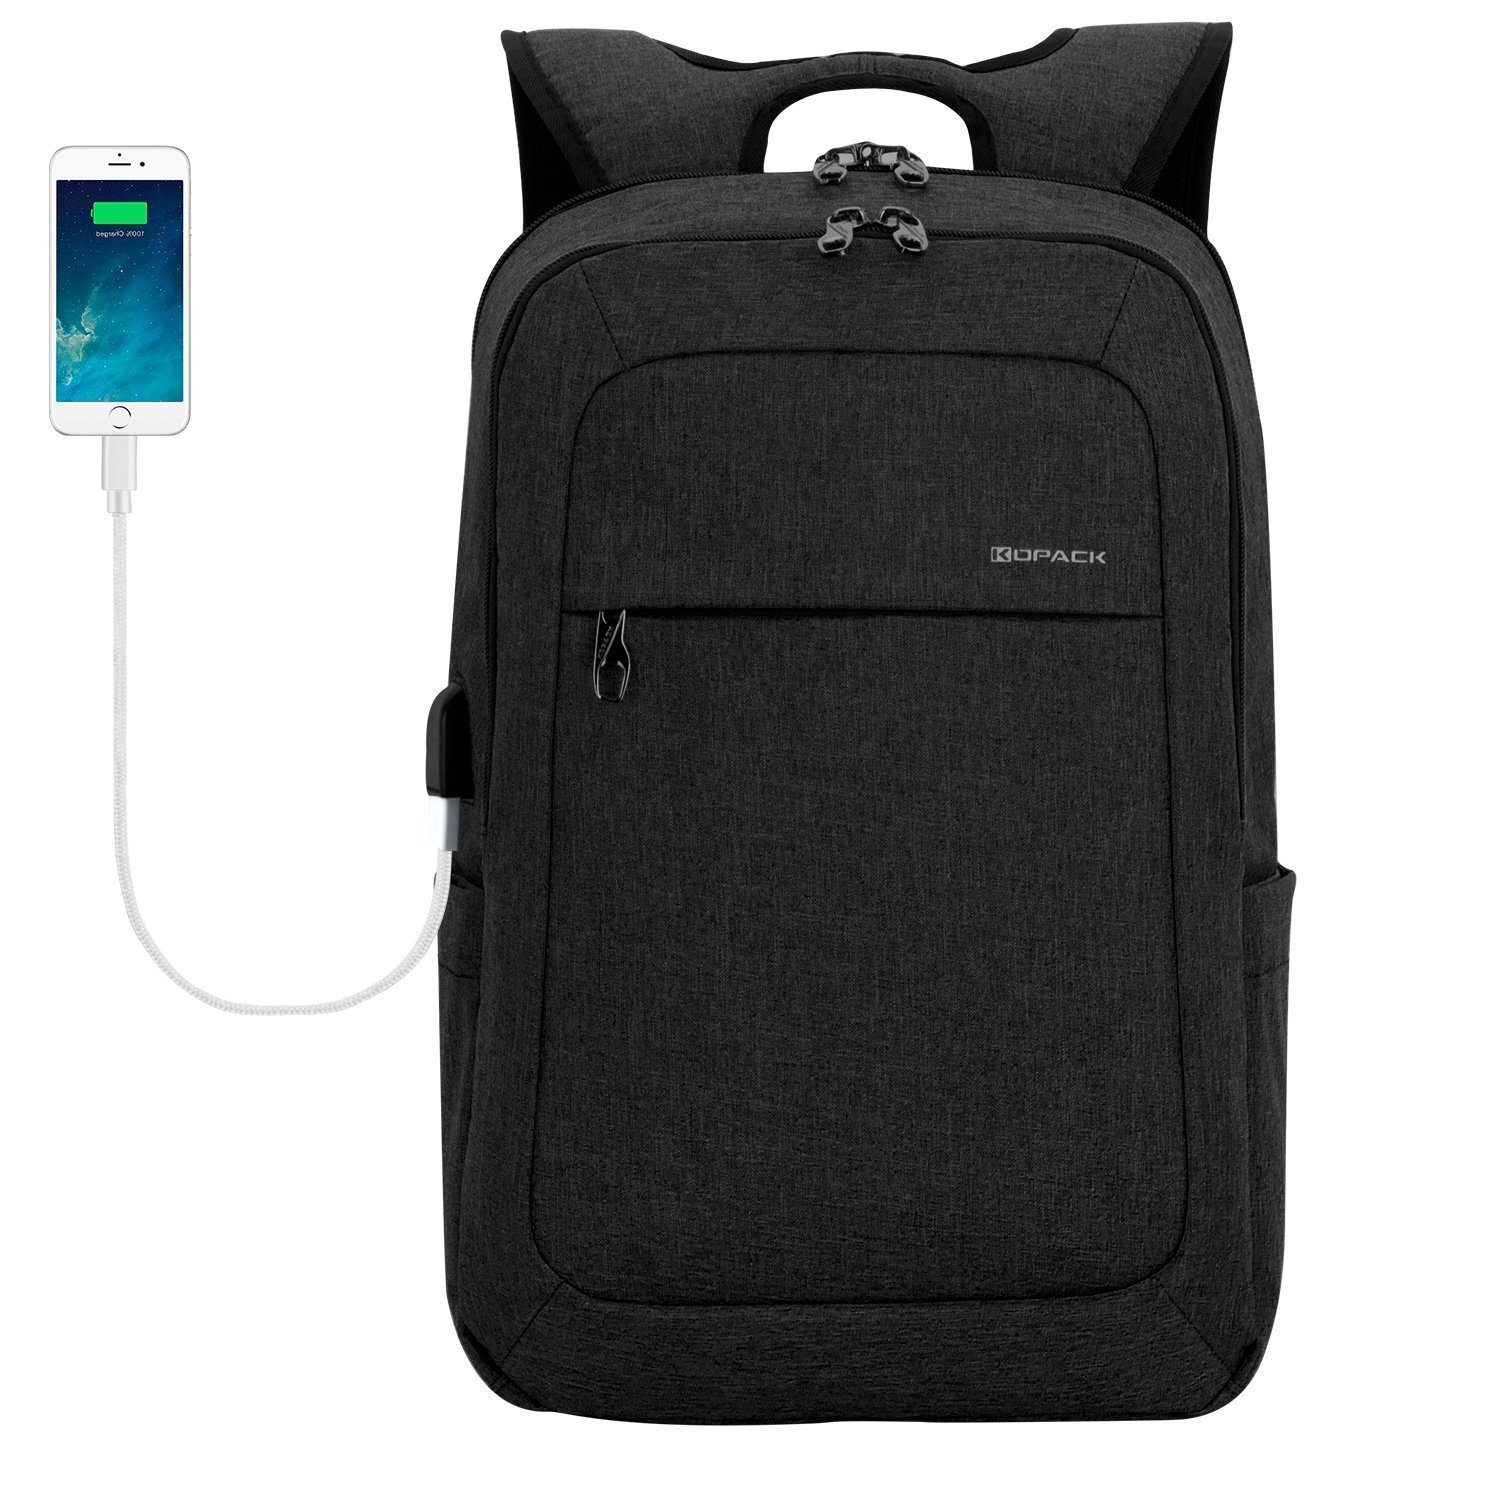 2578609ed102 Amazon.com  kopack Lightweight Laptop Backpack USB Port Water Resistant  15.6 Inch Business Slim Back Pack Travel Bag  Computers   Accessories